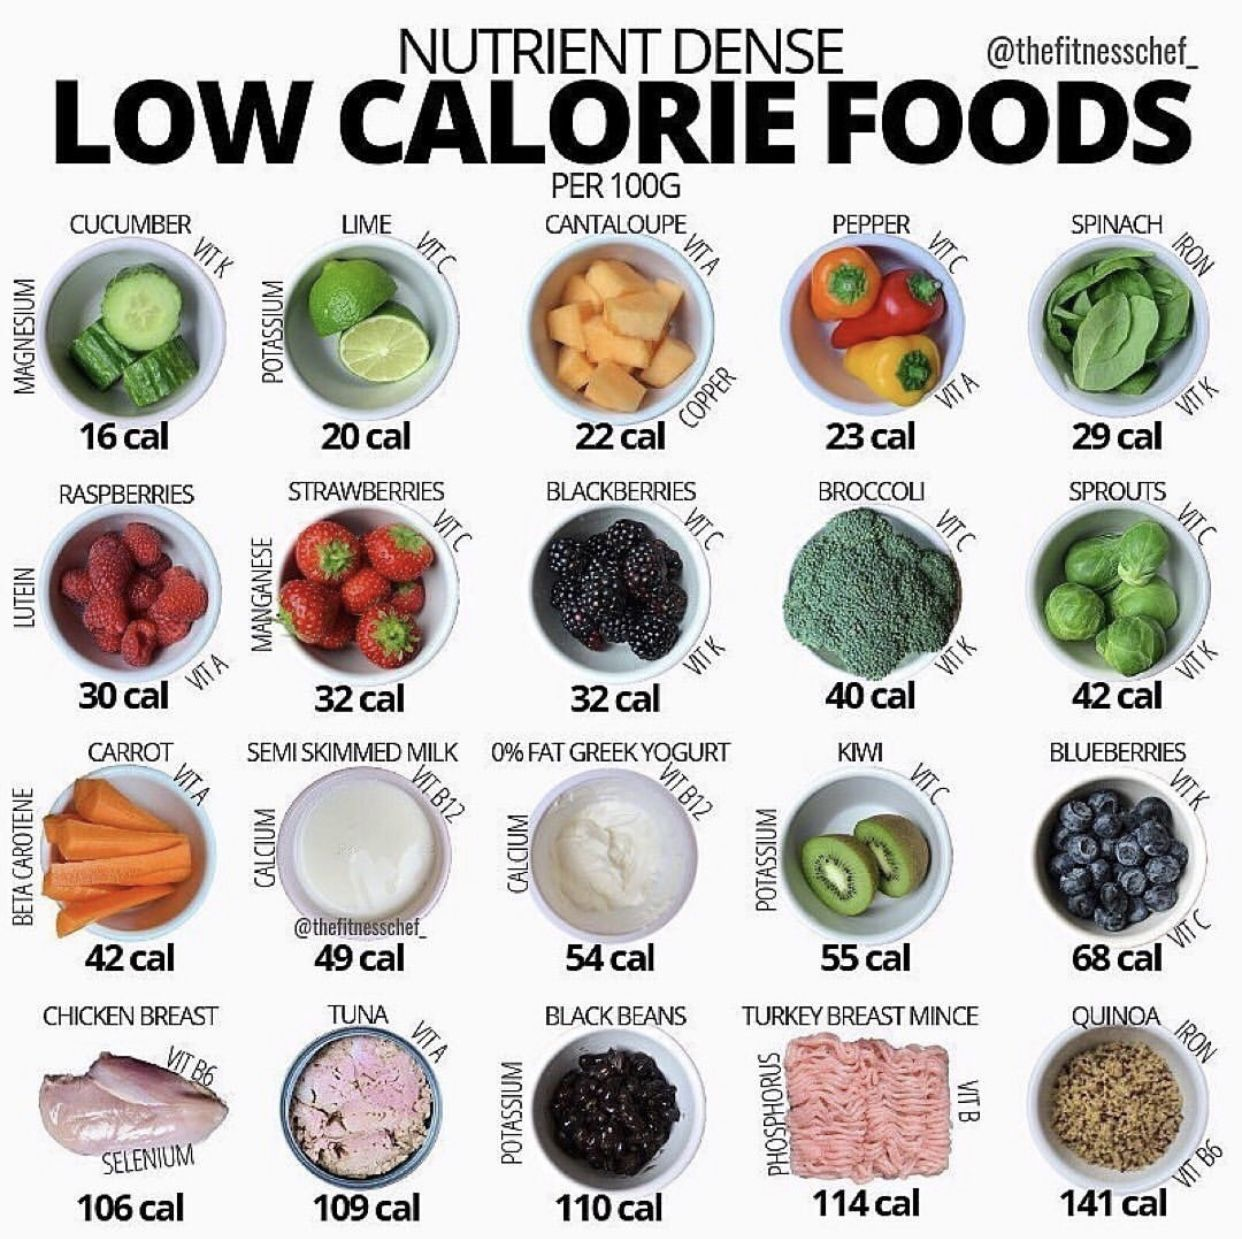 Pin By Andini Maheswari On Health Control Calories In 2020 Calorie Dense Foods Healthy Eating Cucumber Calories